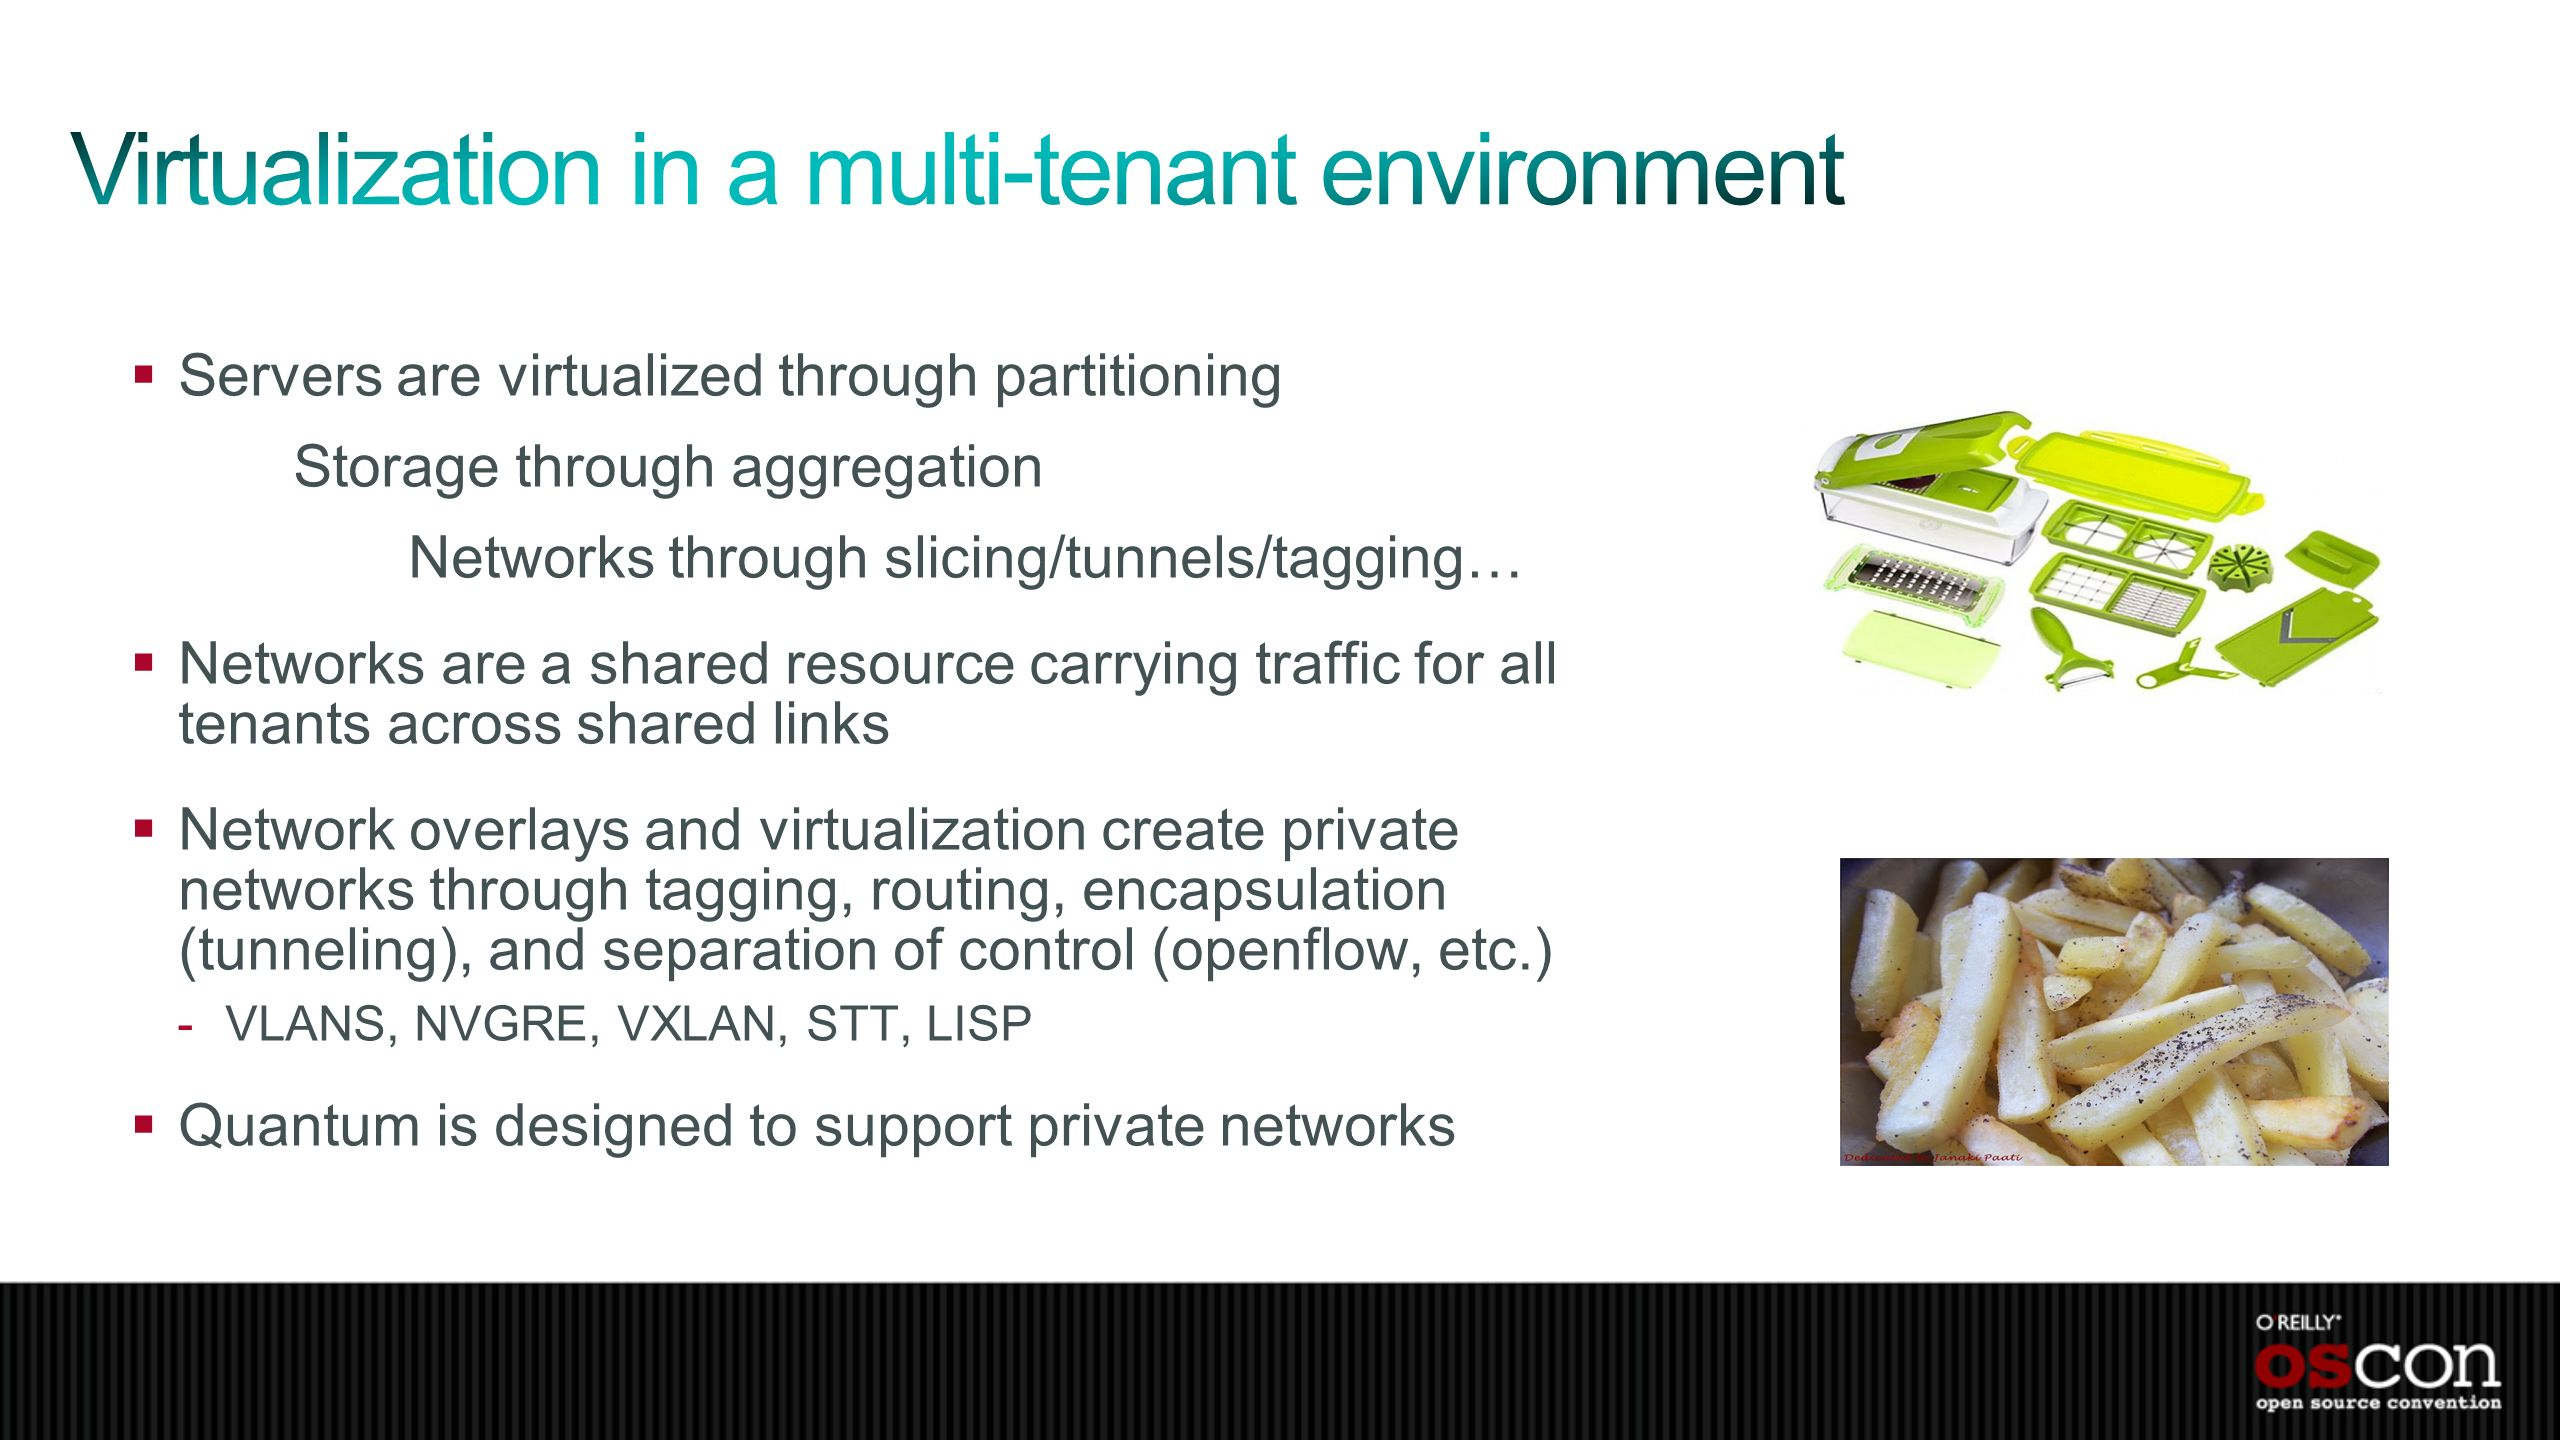 Servers are virtualized through partitioning Storage through aggregation Networks through slicing/tunnels/tagging… Networks are a shared resource carr